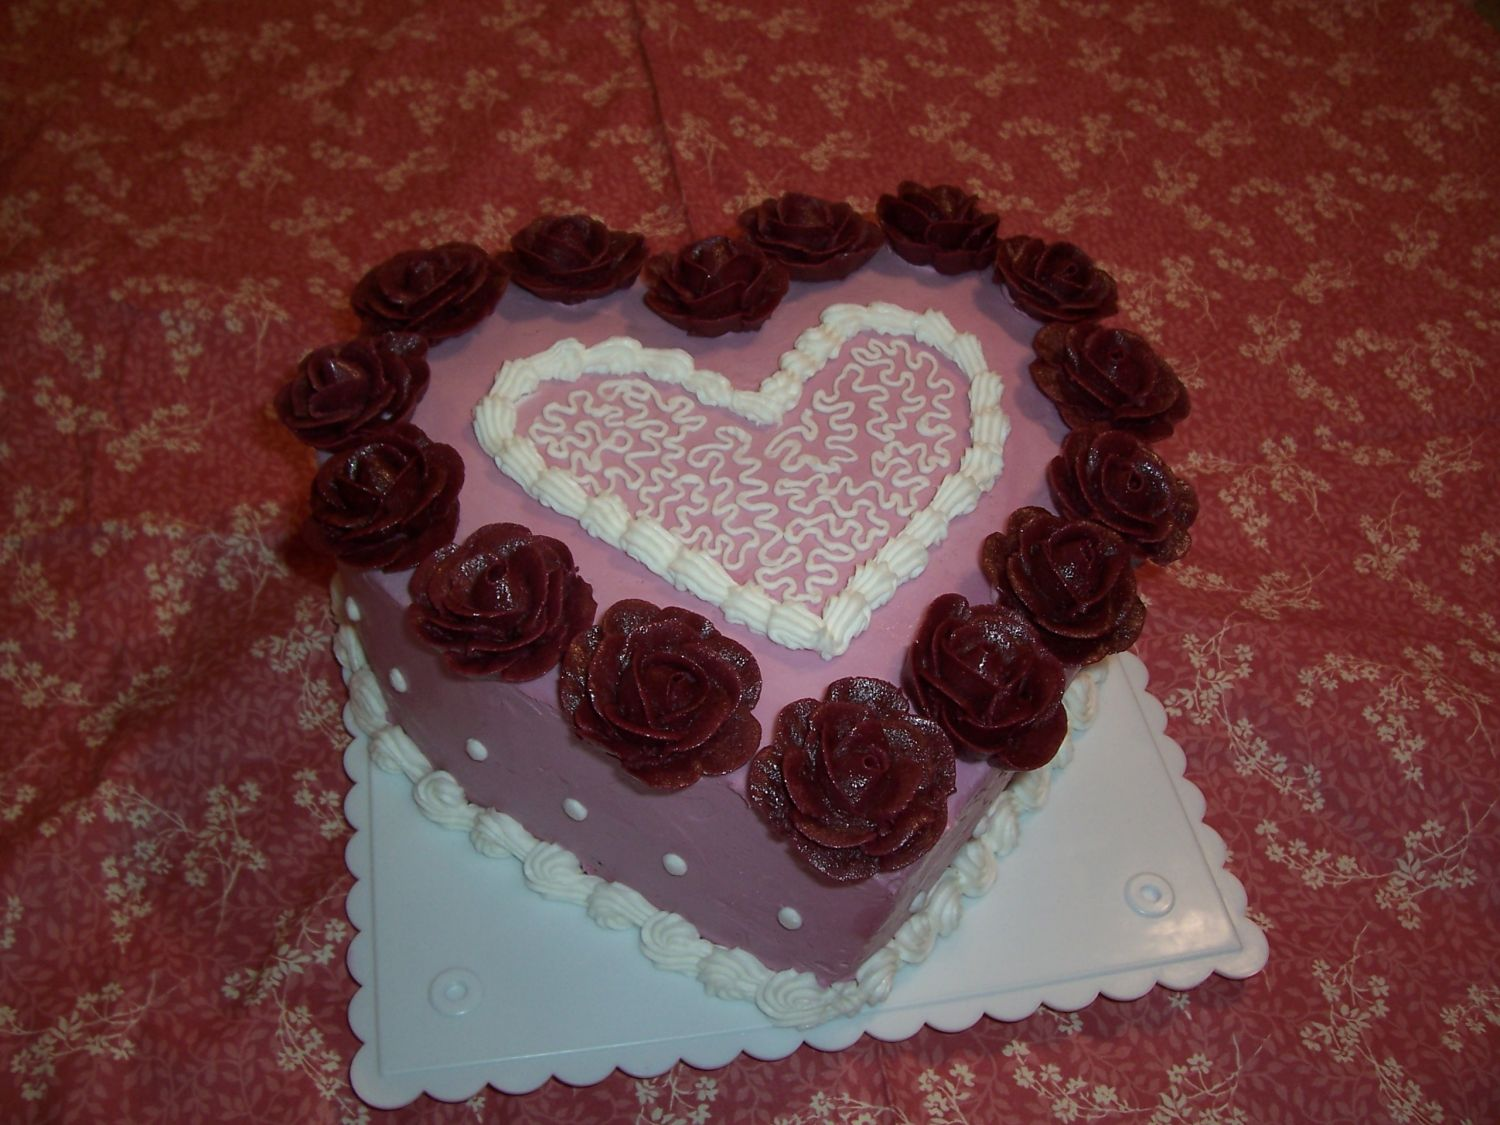 Valentine's cake done just for the heck of it.   Decorations are all buttercream and the cake is chocolate.